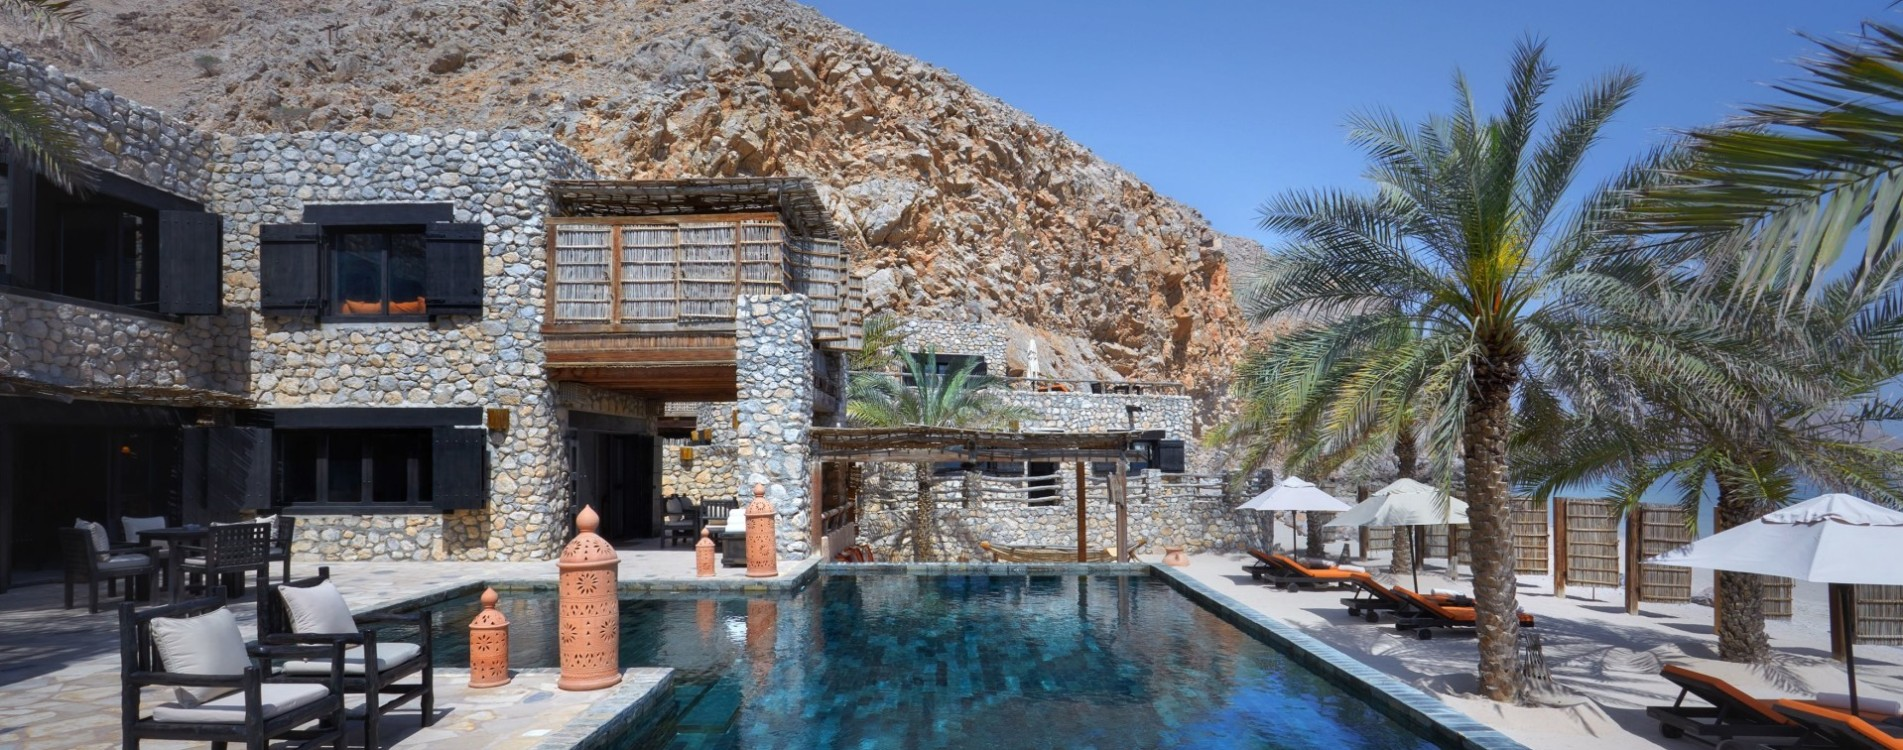 Six-Senses-Zighy-Bay-Four-Bedroom-Beachfront-Reserve-Pool-Exterior-Oman.jpg